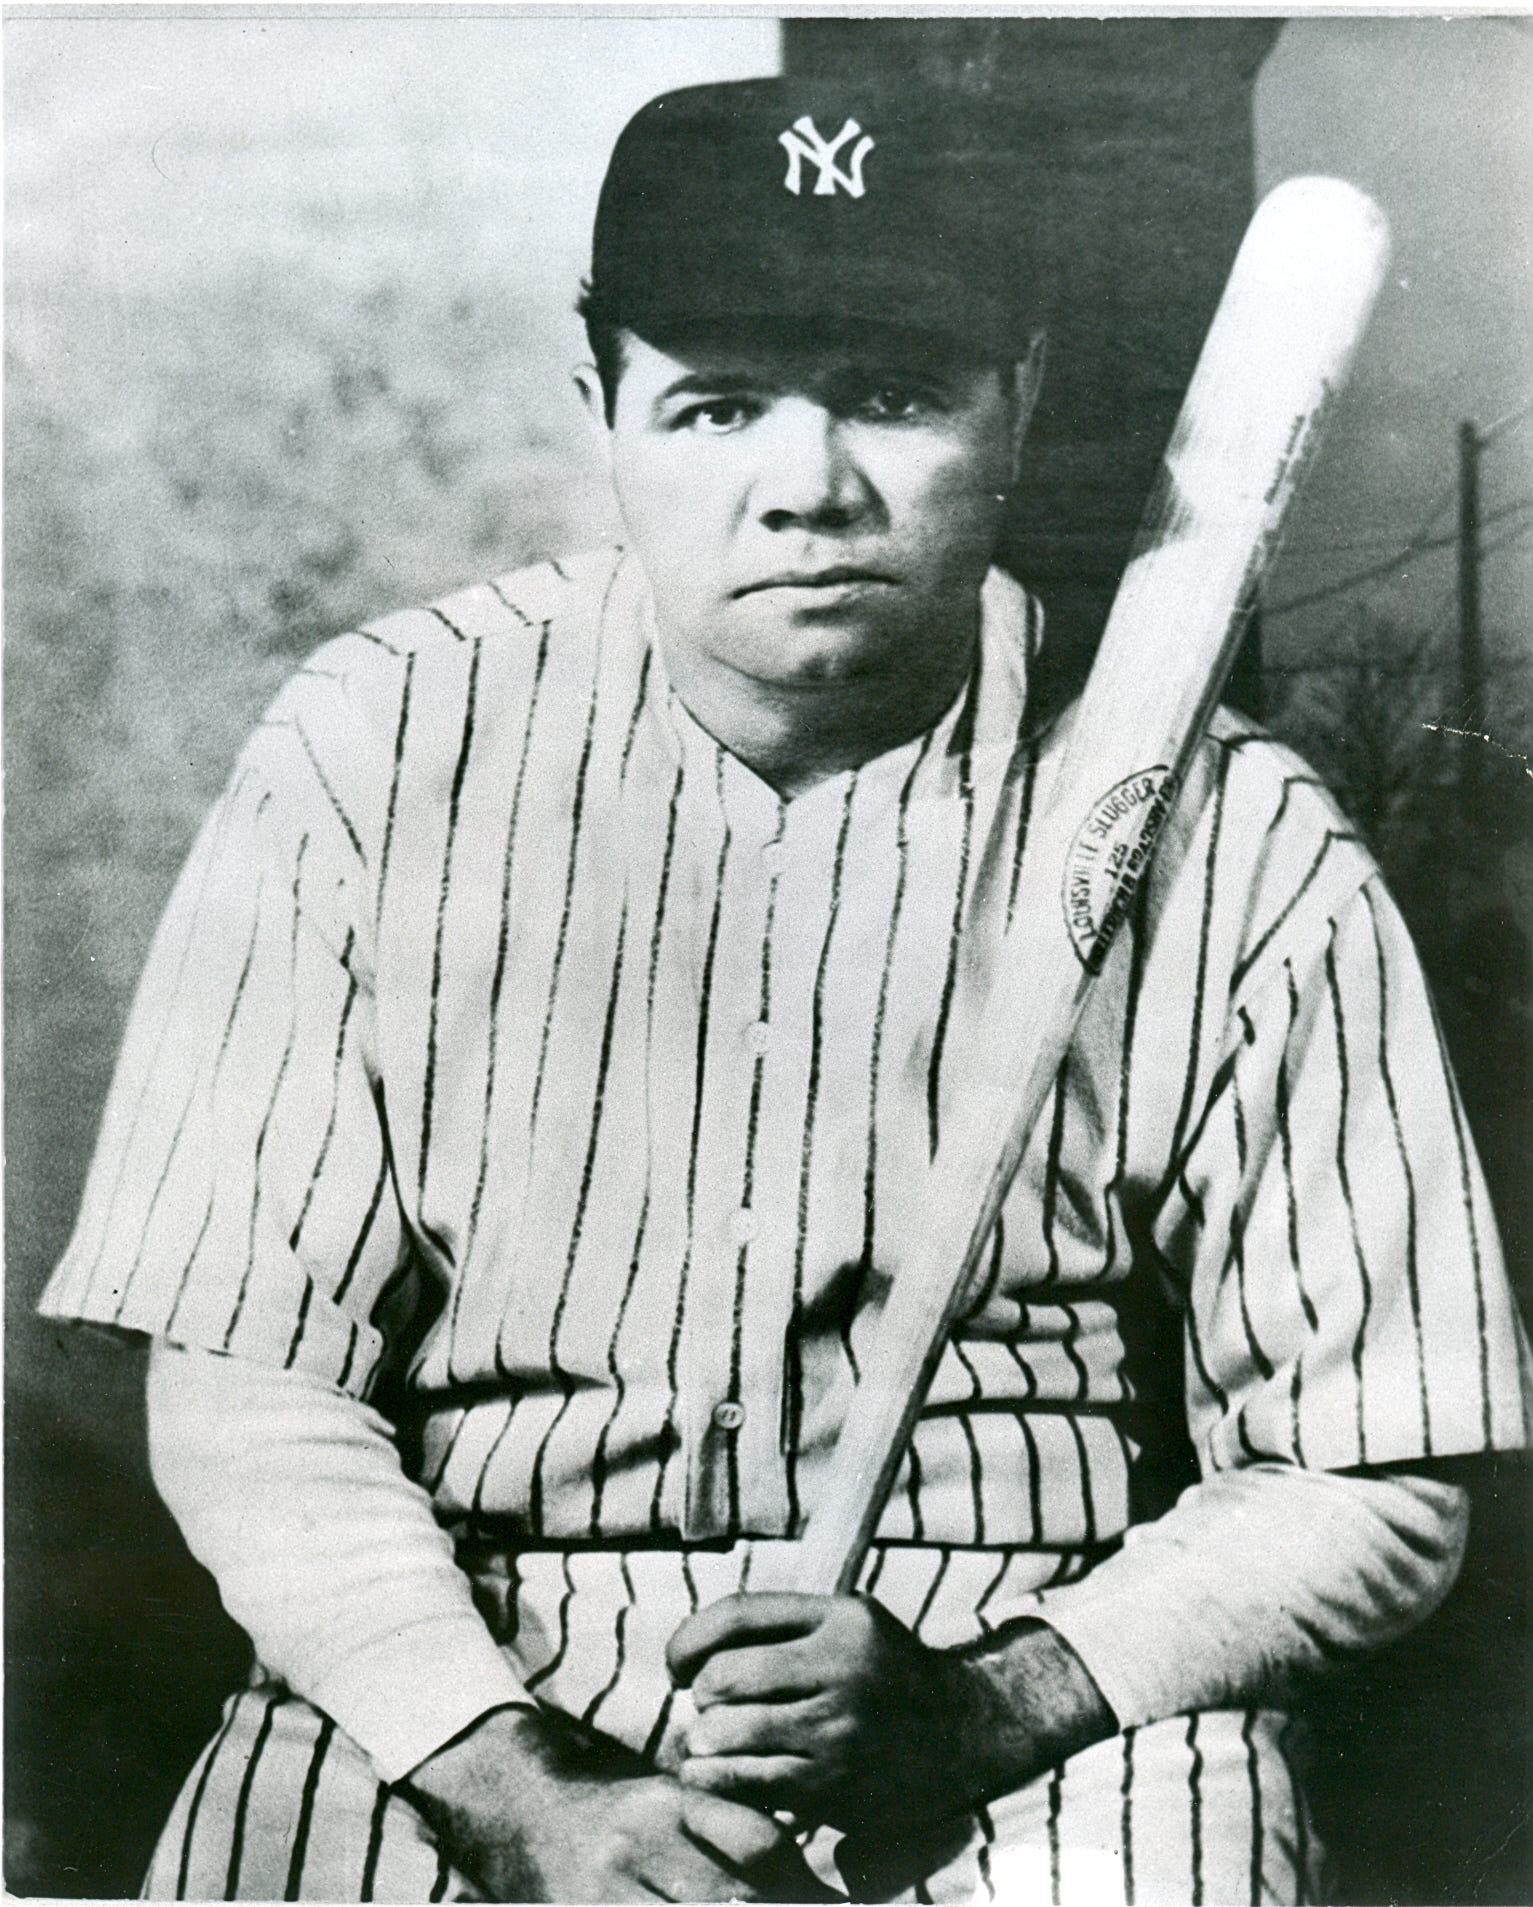 Historic Yankees contract signed by Babe Ruth sells for nearly $300,000